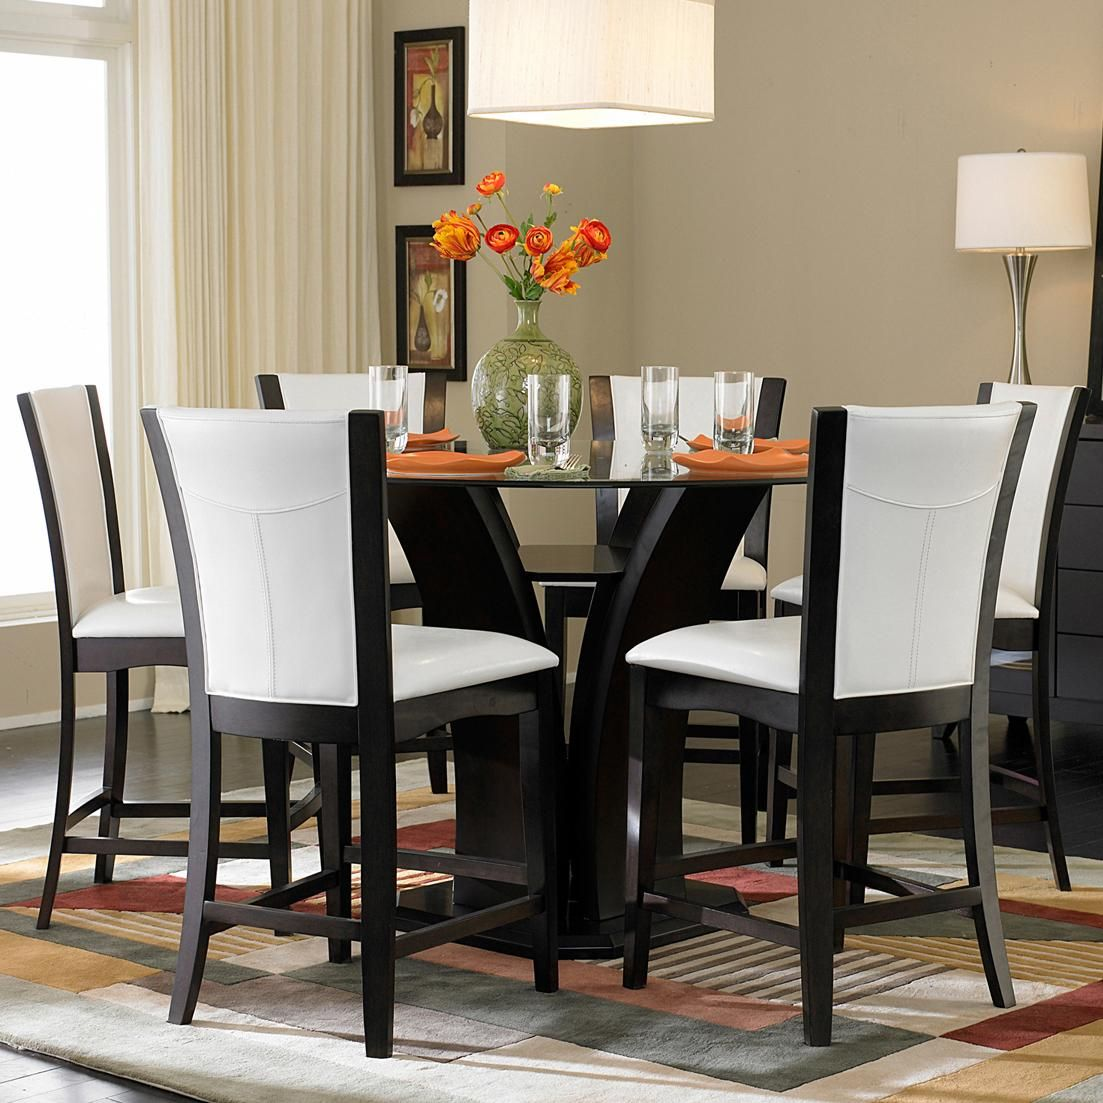 710 7piece counter height glass top dining set